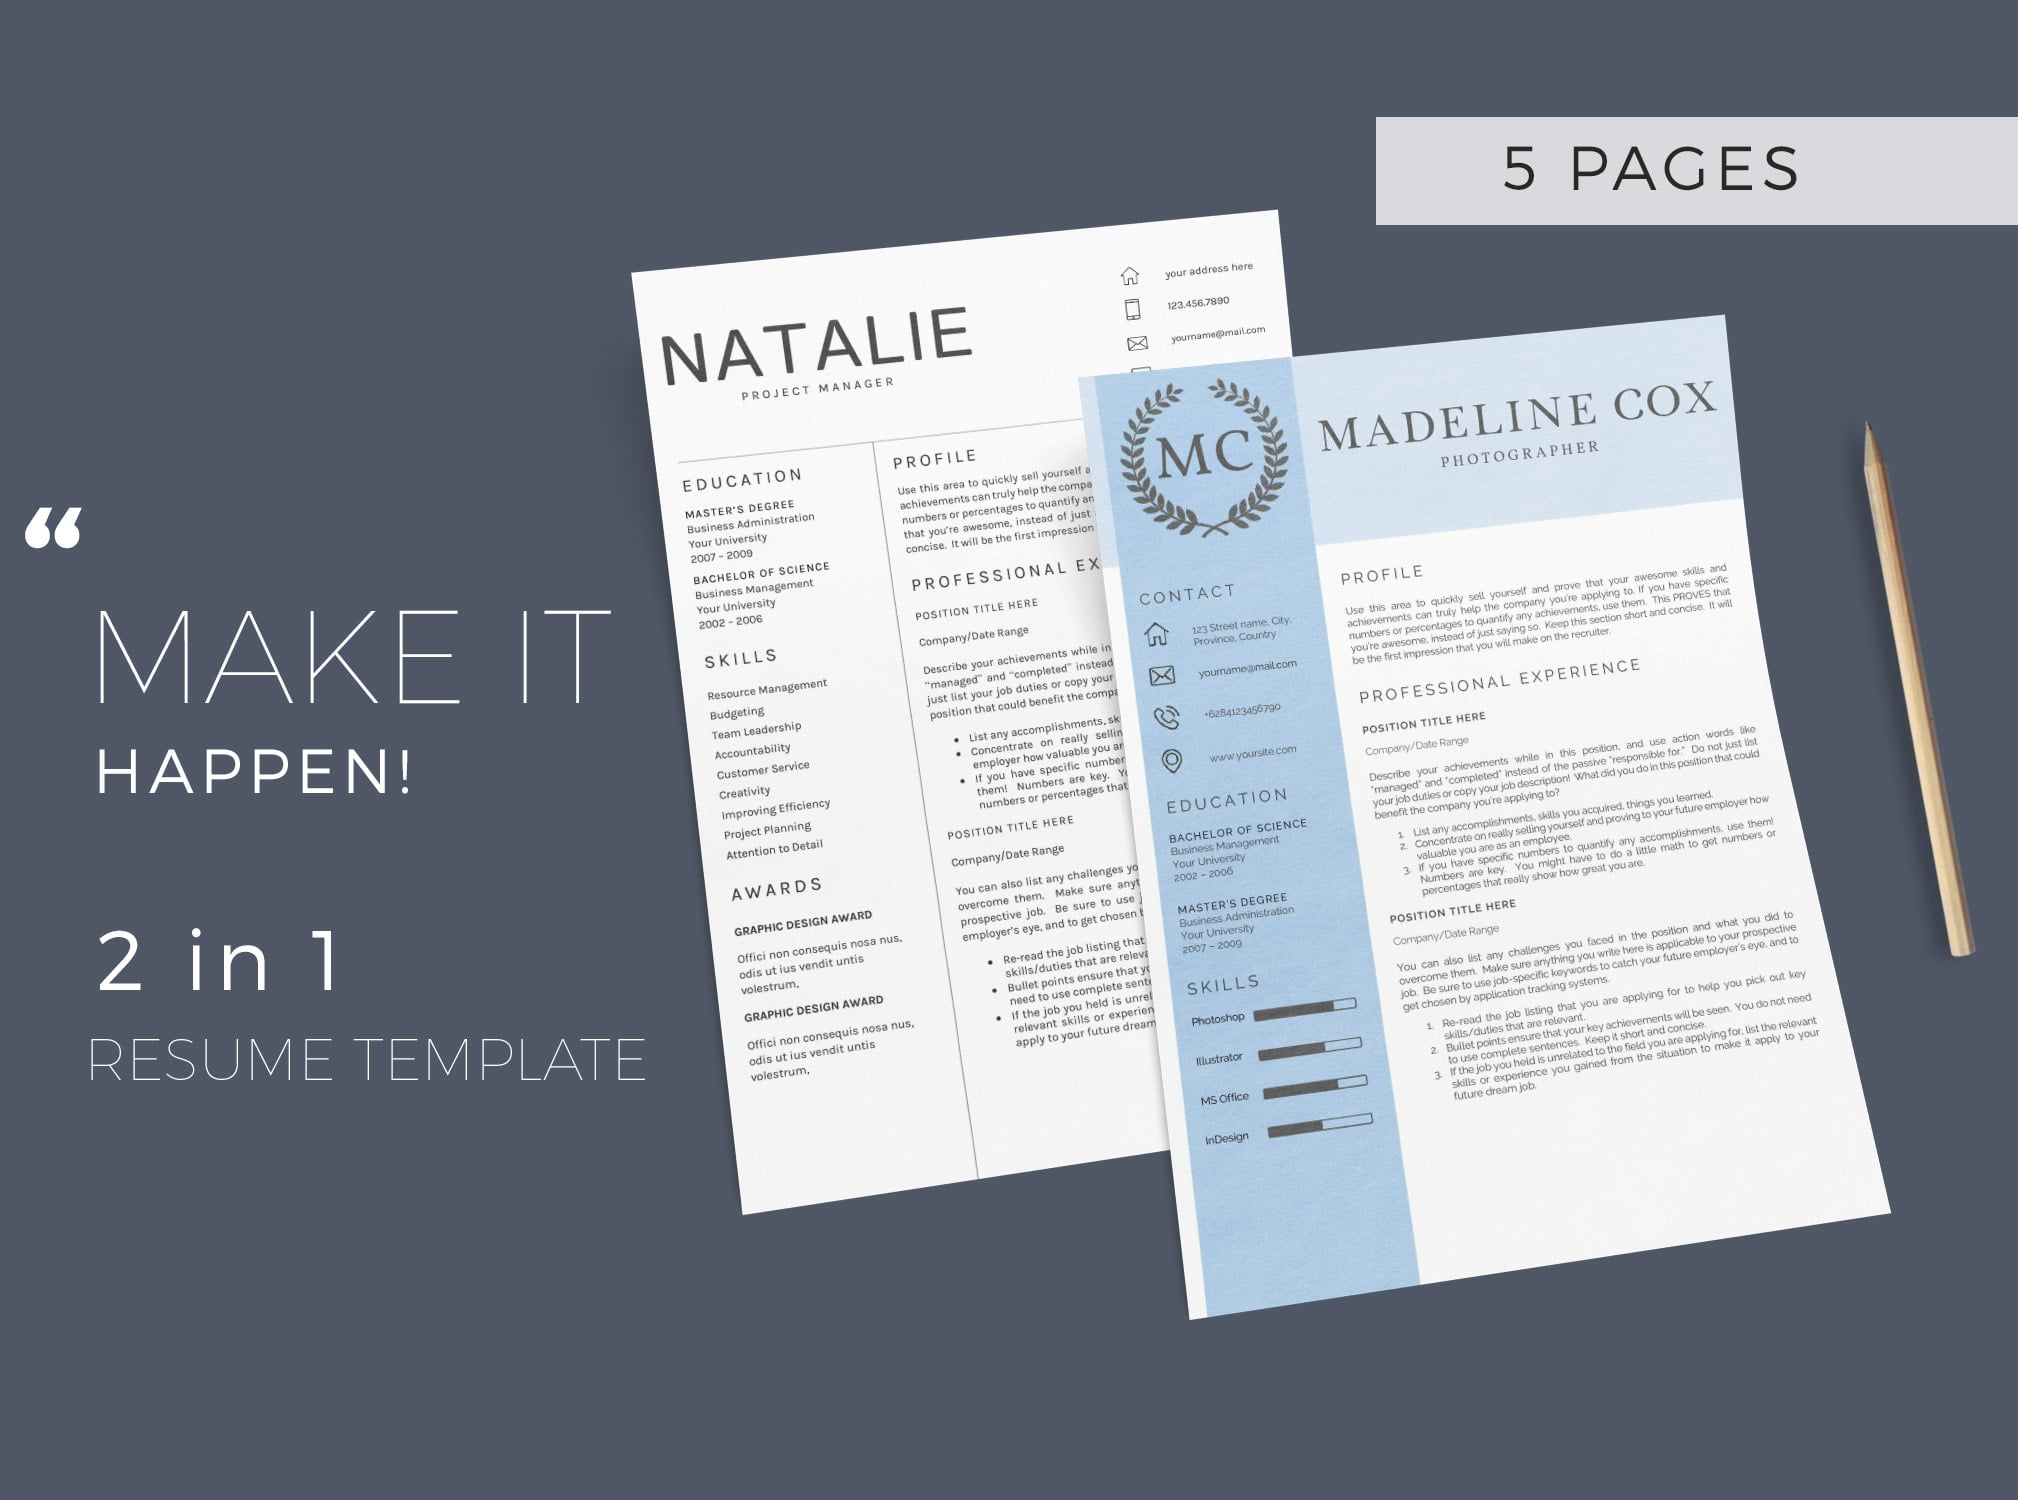 Bundle - Resume Template 5 Pages - $11 - 1 2